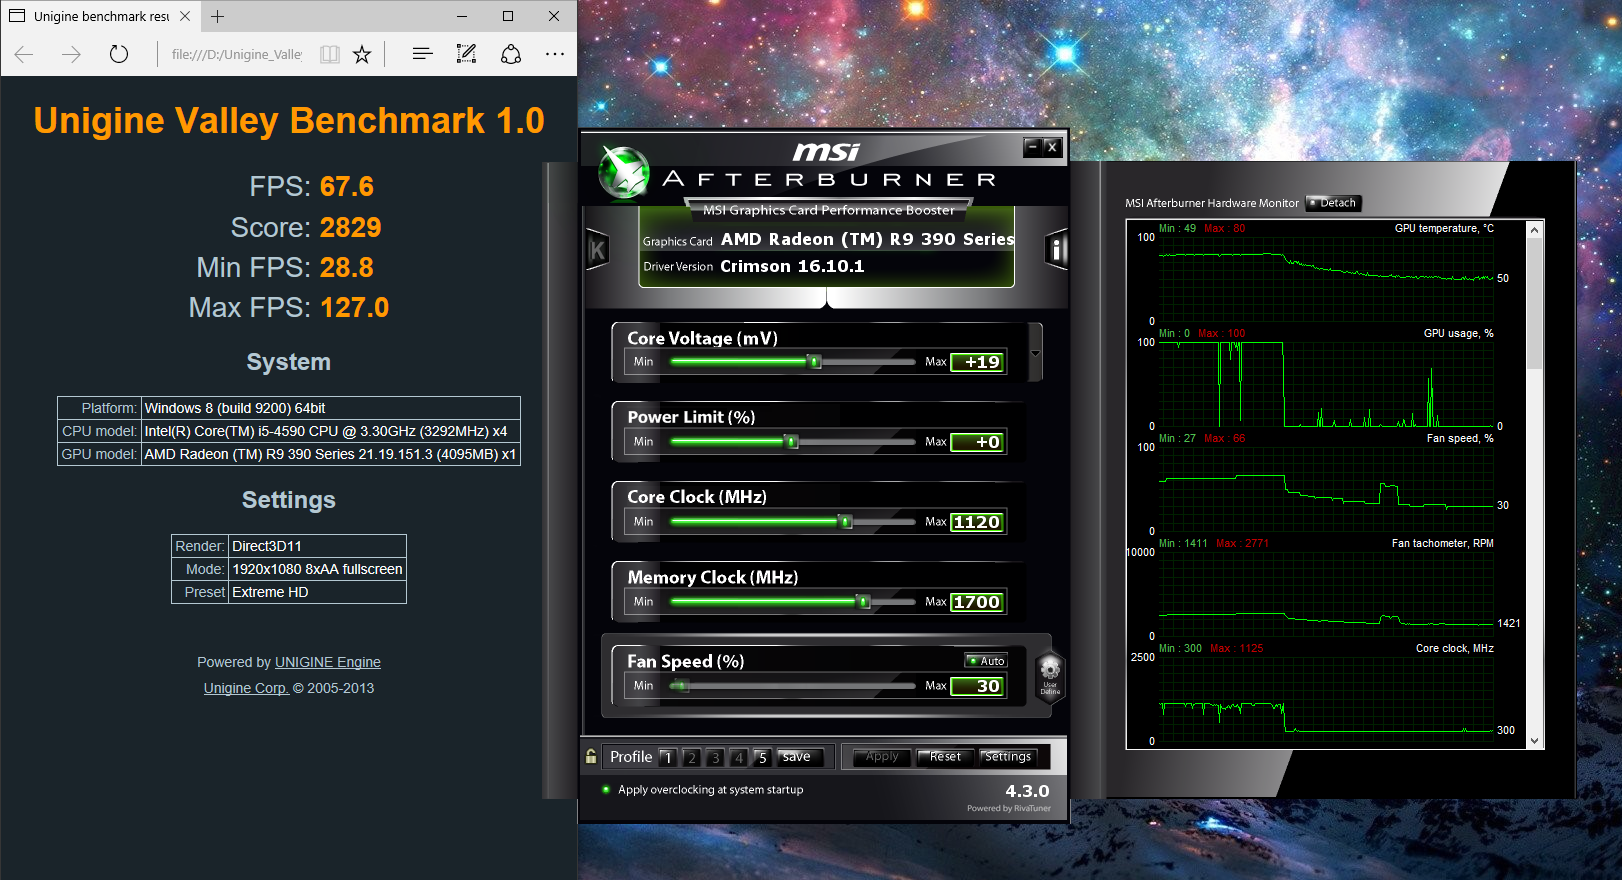 I tried overclocking my R9 390 for the first time